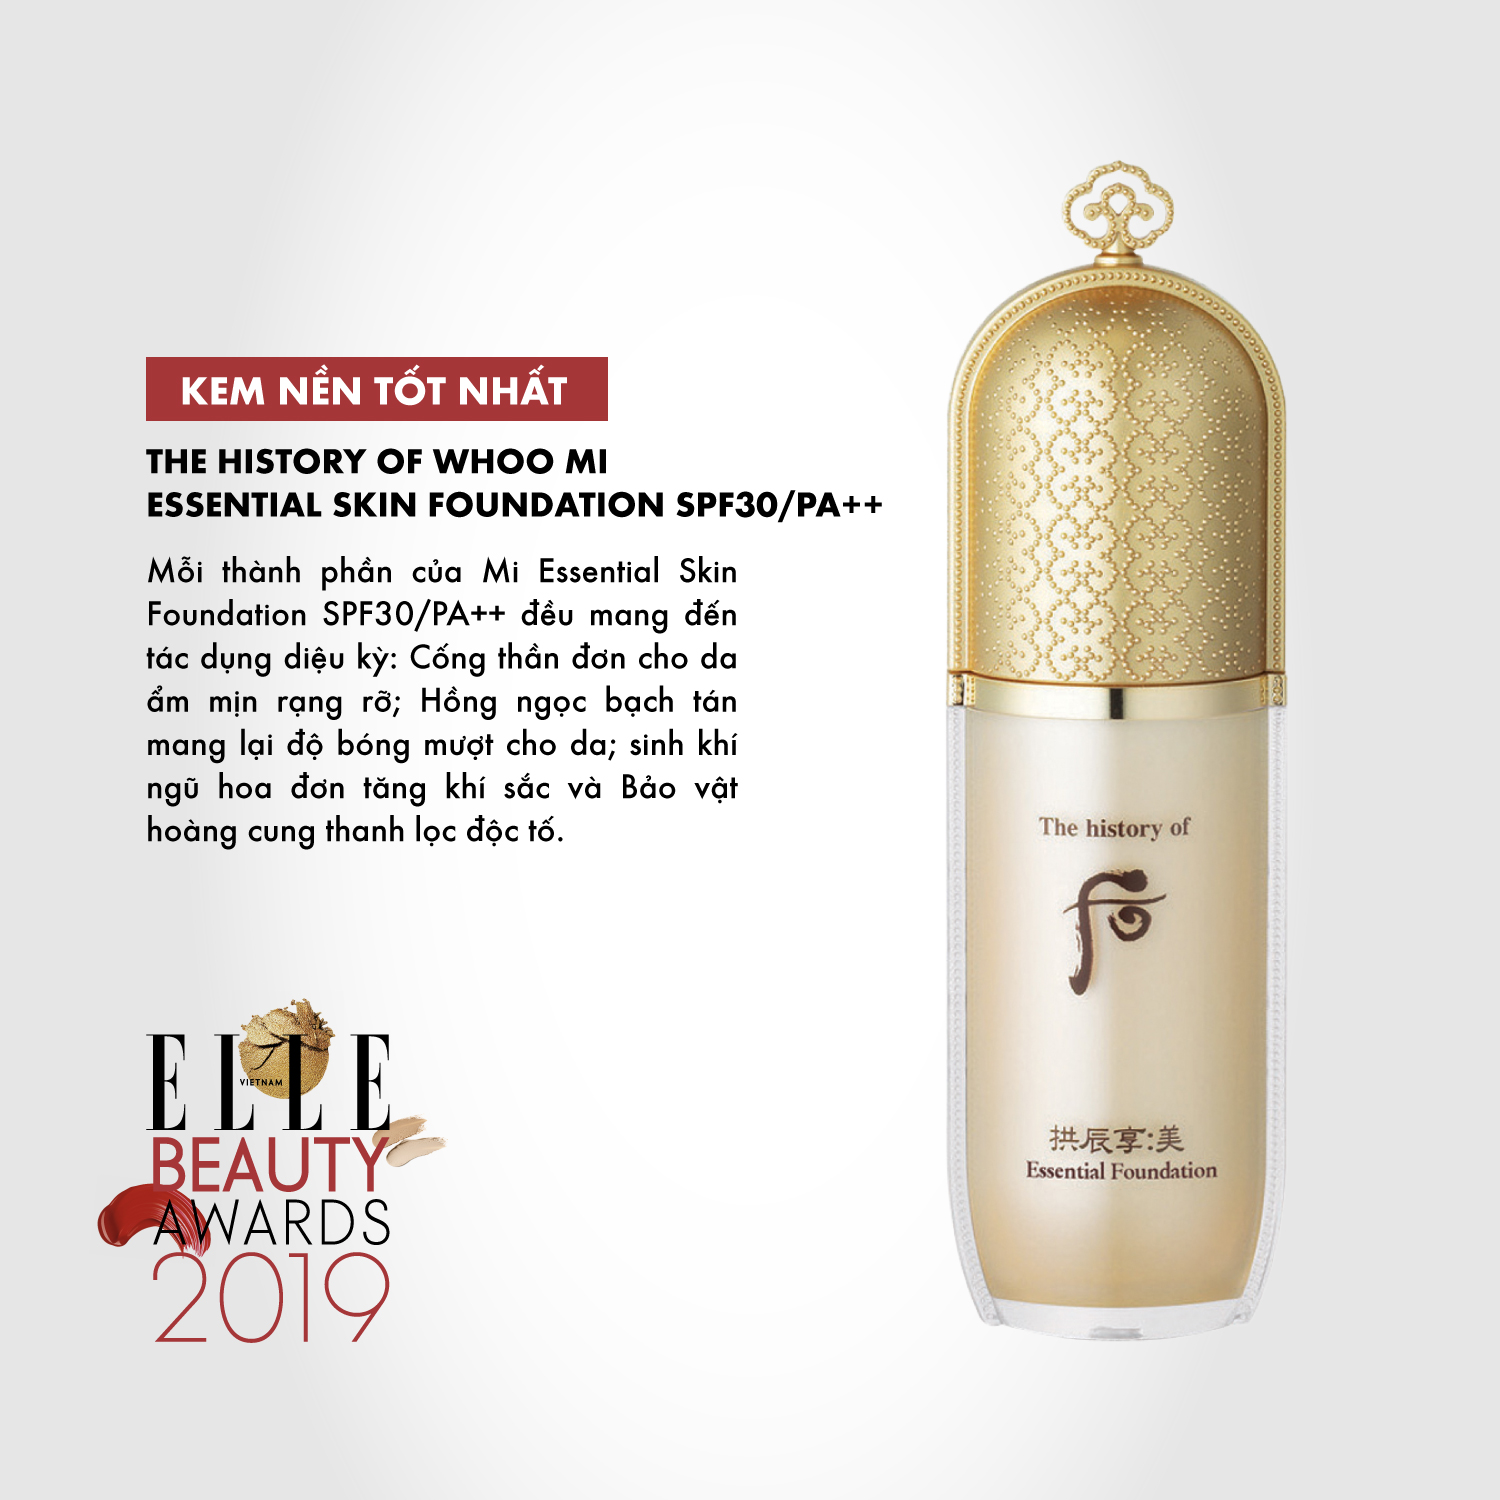 kem nền 01 ELLE Beauty Awards 2019